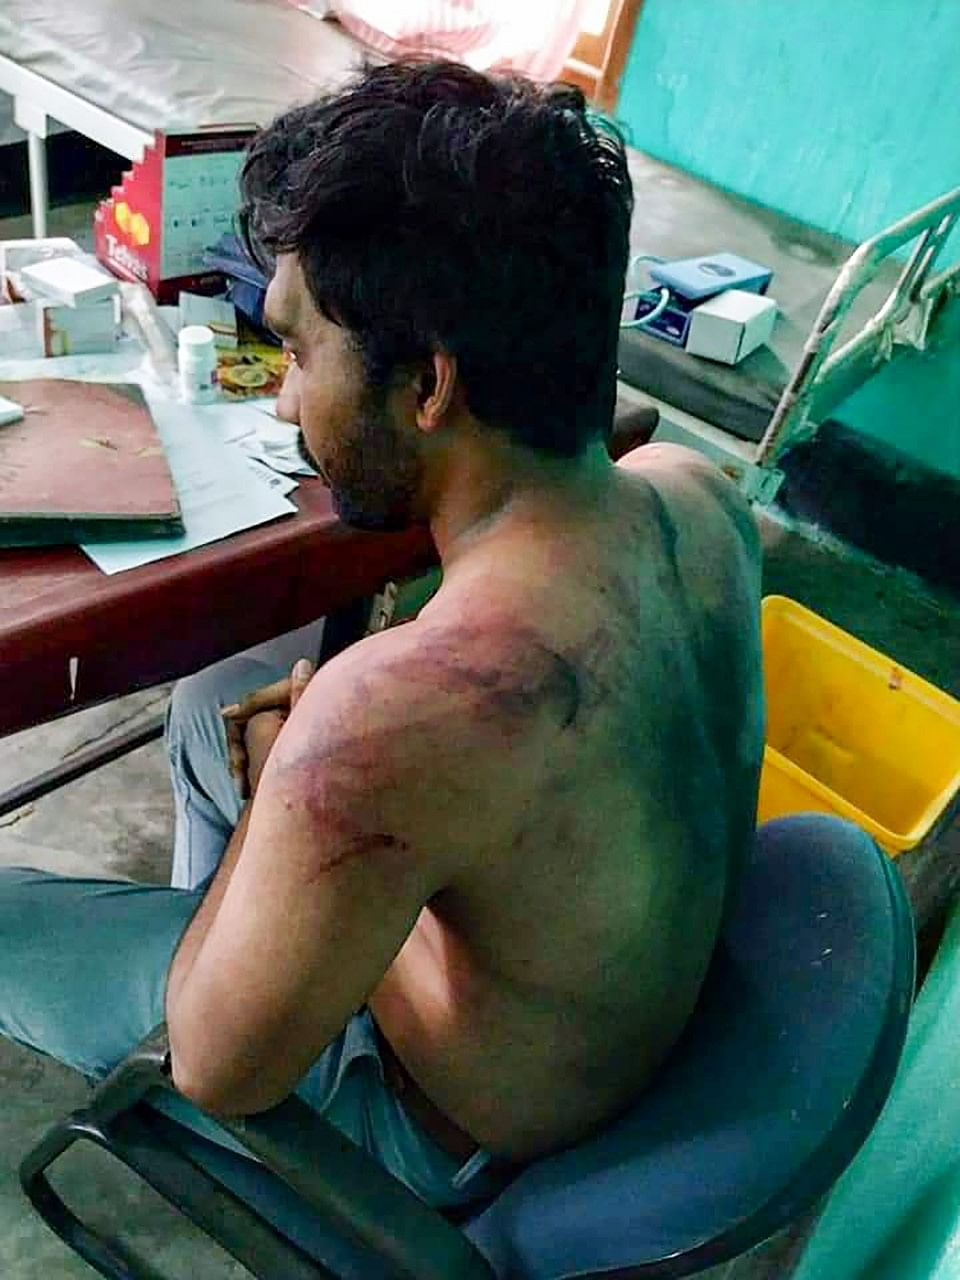 A picture of Dr Seuj Kumar Senapati, a medical officer of Udali COVID care centre, who was assaulted by miscreants, in Hojai district of Assam.